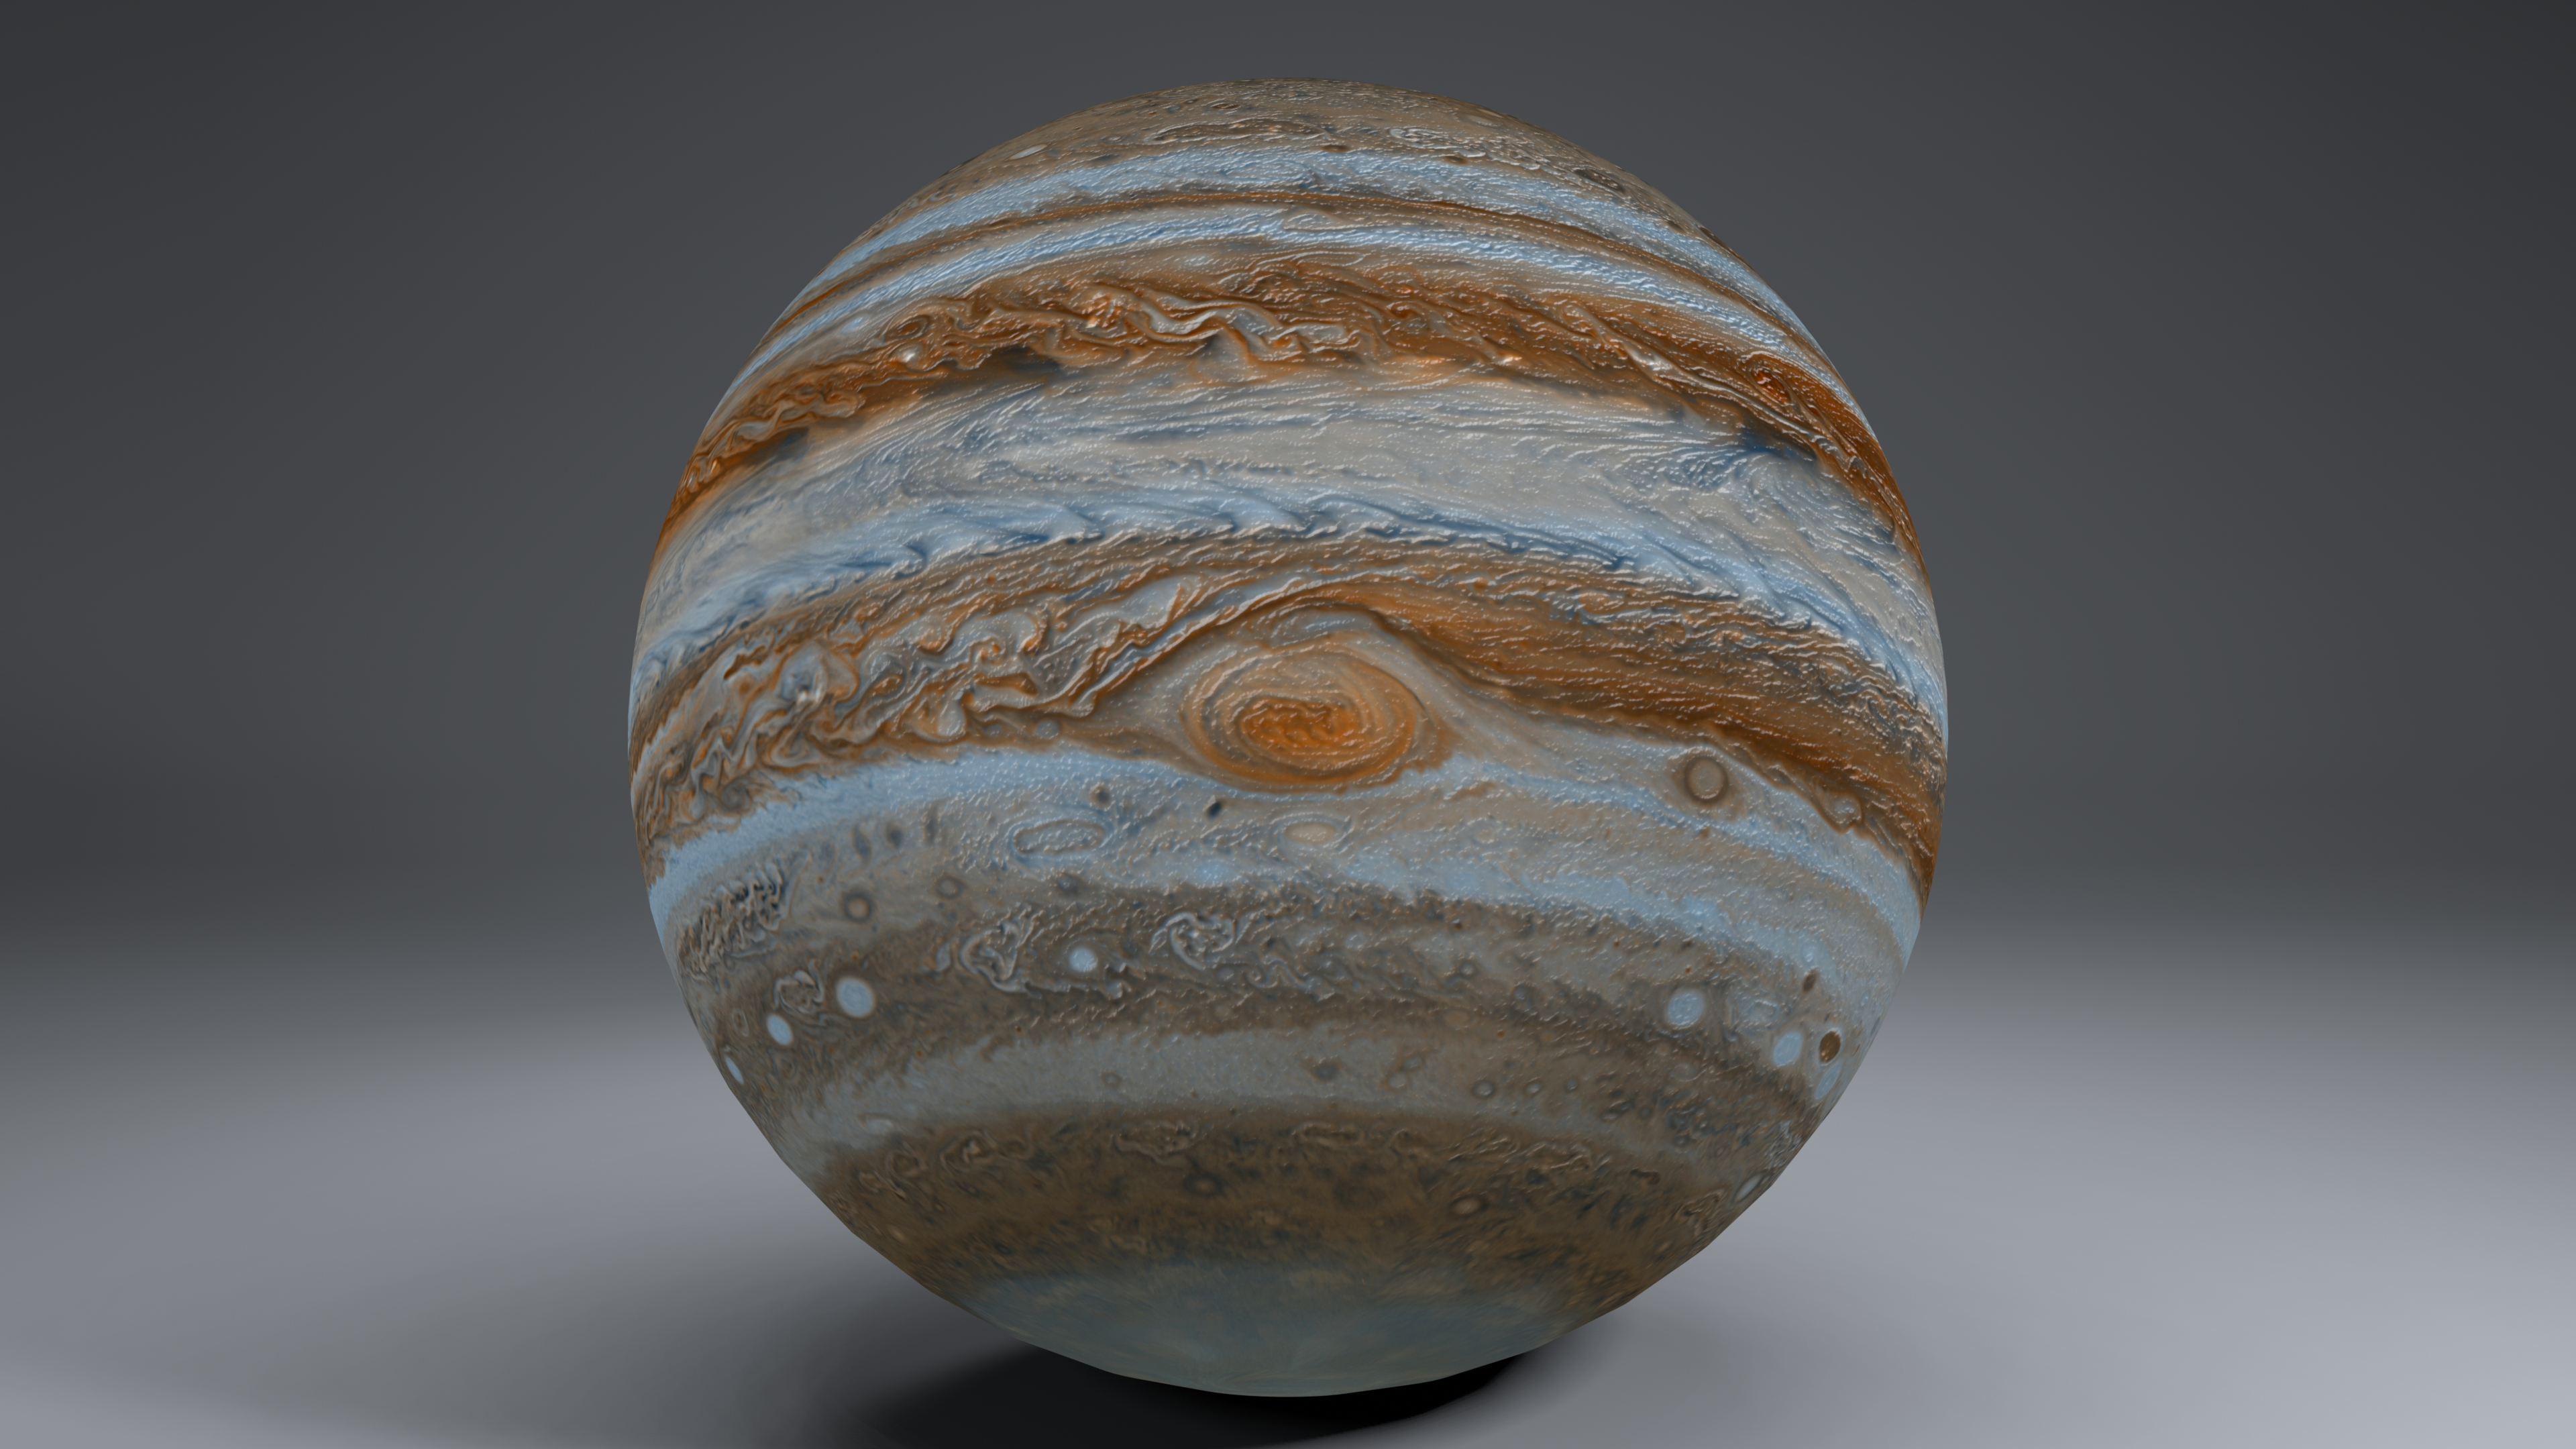 Jupiter 6k 3d model 3ds fbx blend dae obj 213399